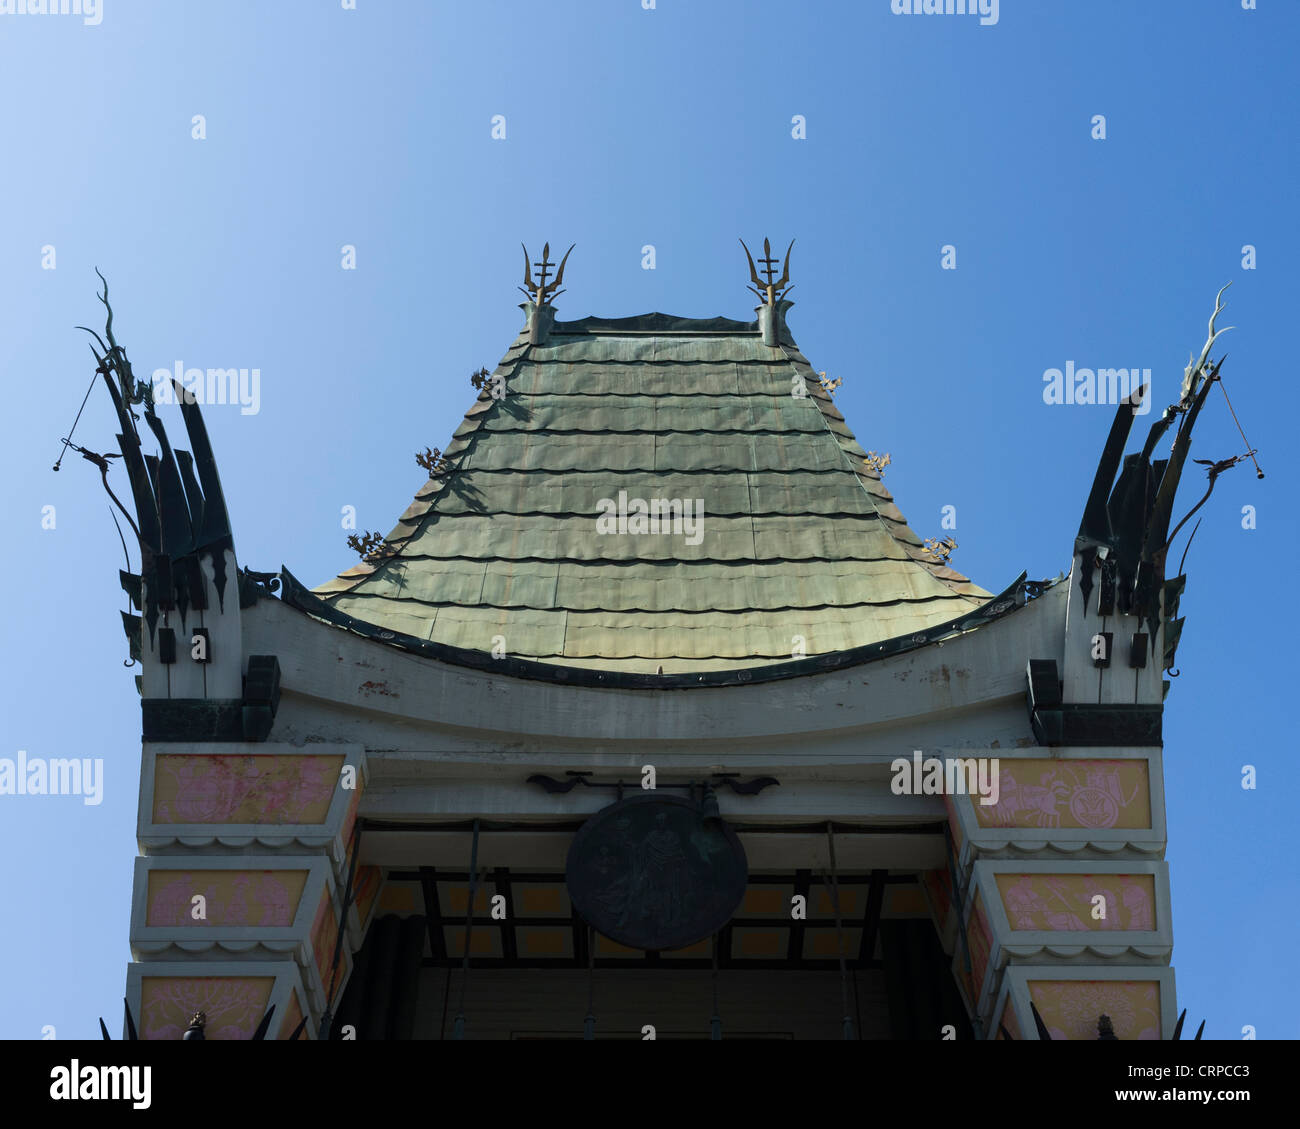 The roof of Grauman's Chinese Theatre, Hollywood Boulevard, Hollywood, Los Angeles, California, United States - Stock Image